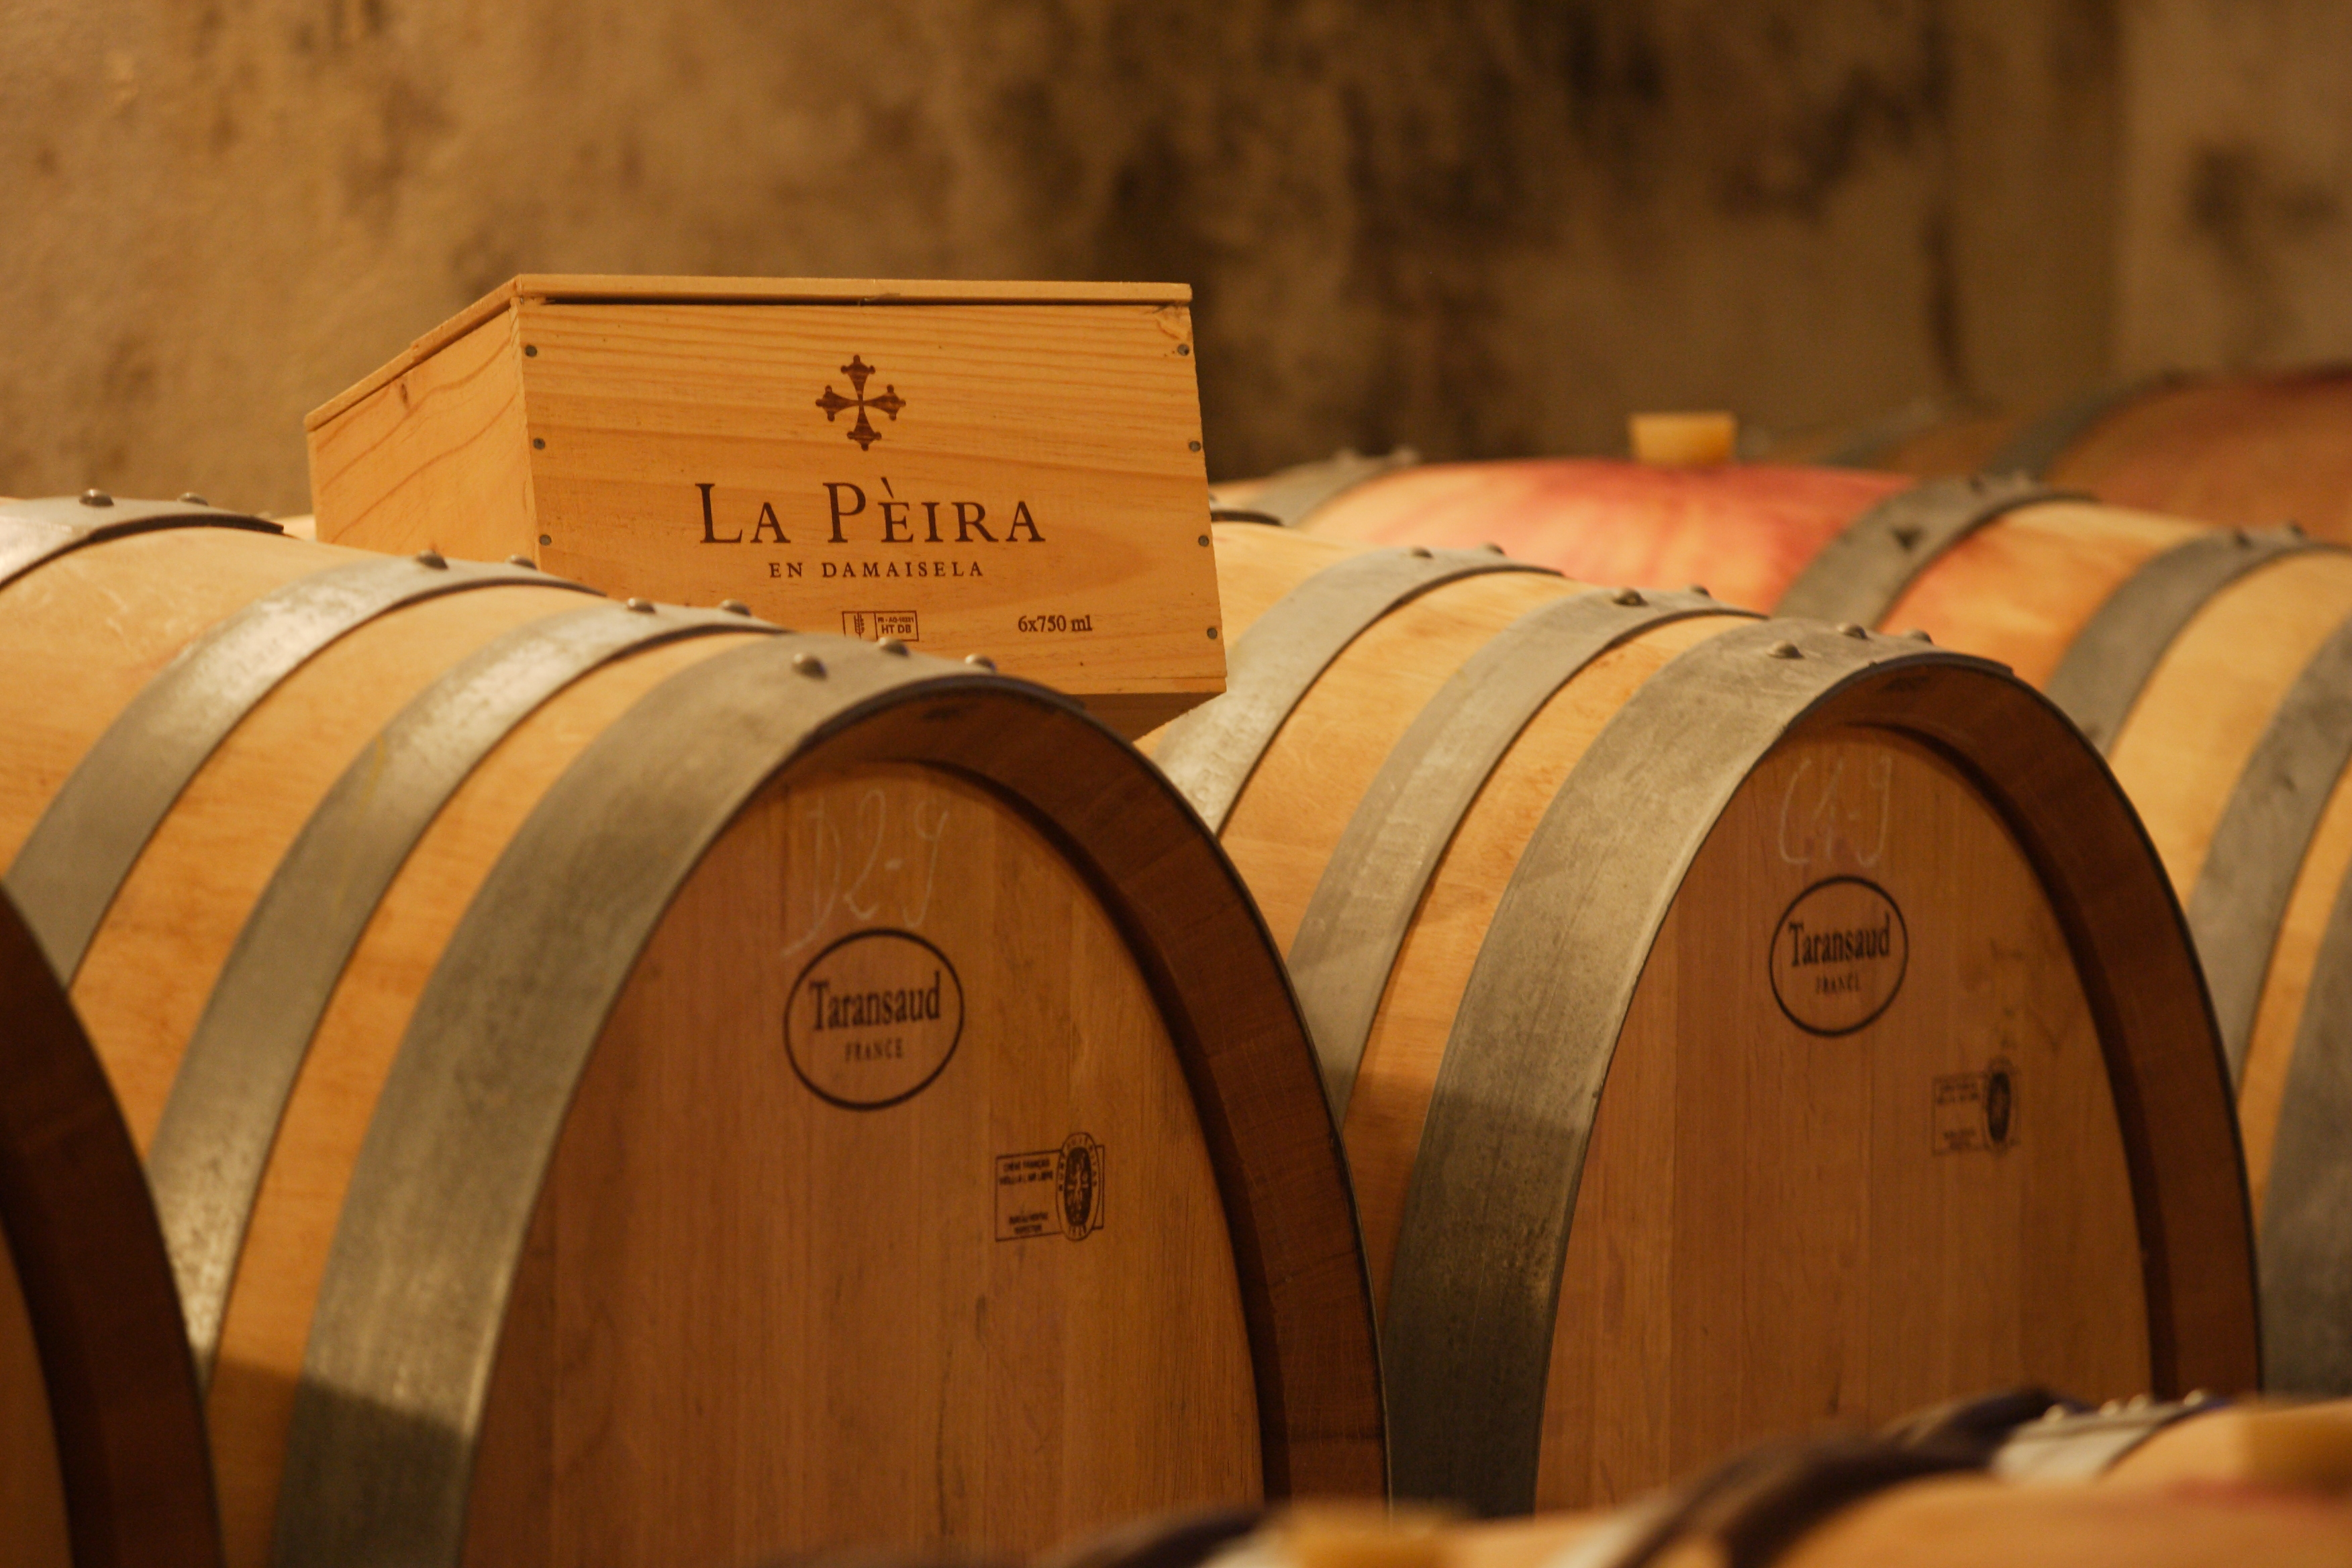 La Peira in Cellartracker's top-rated Wines for 2010 La Peira